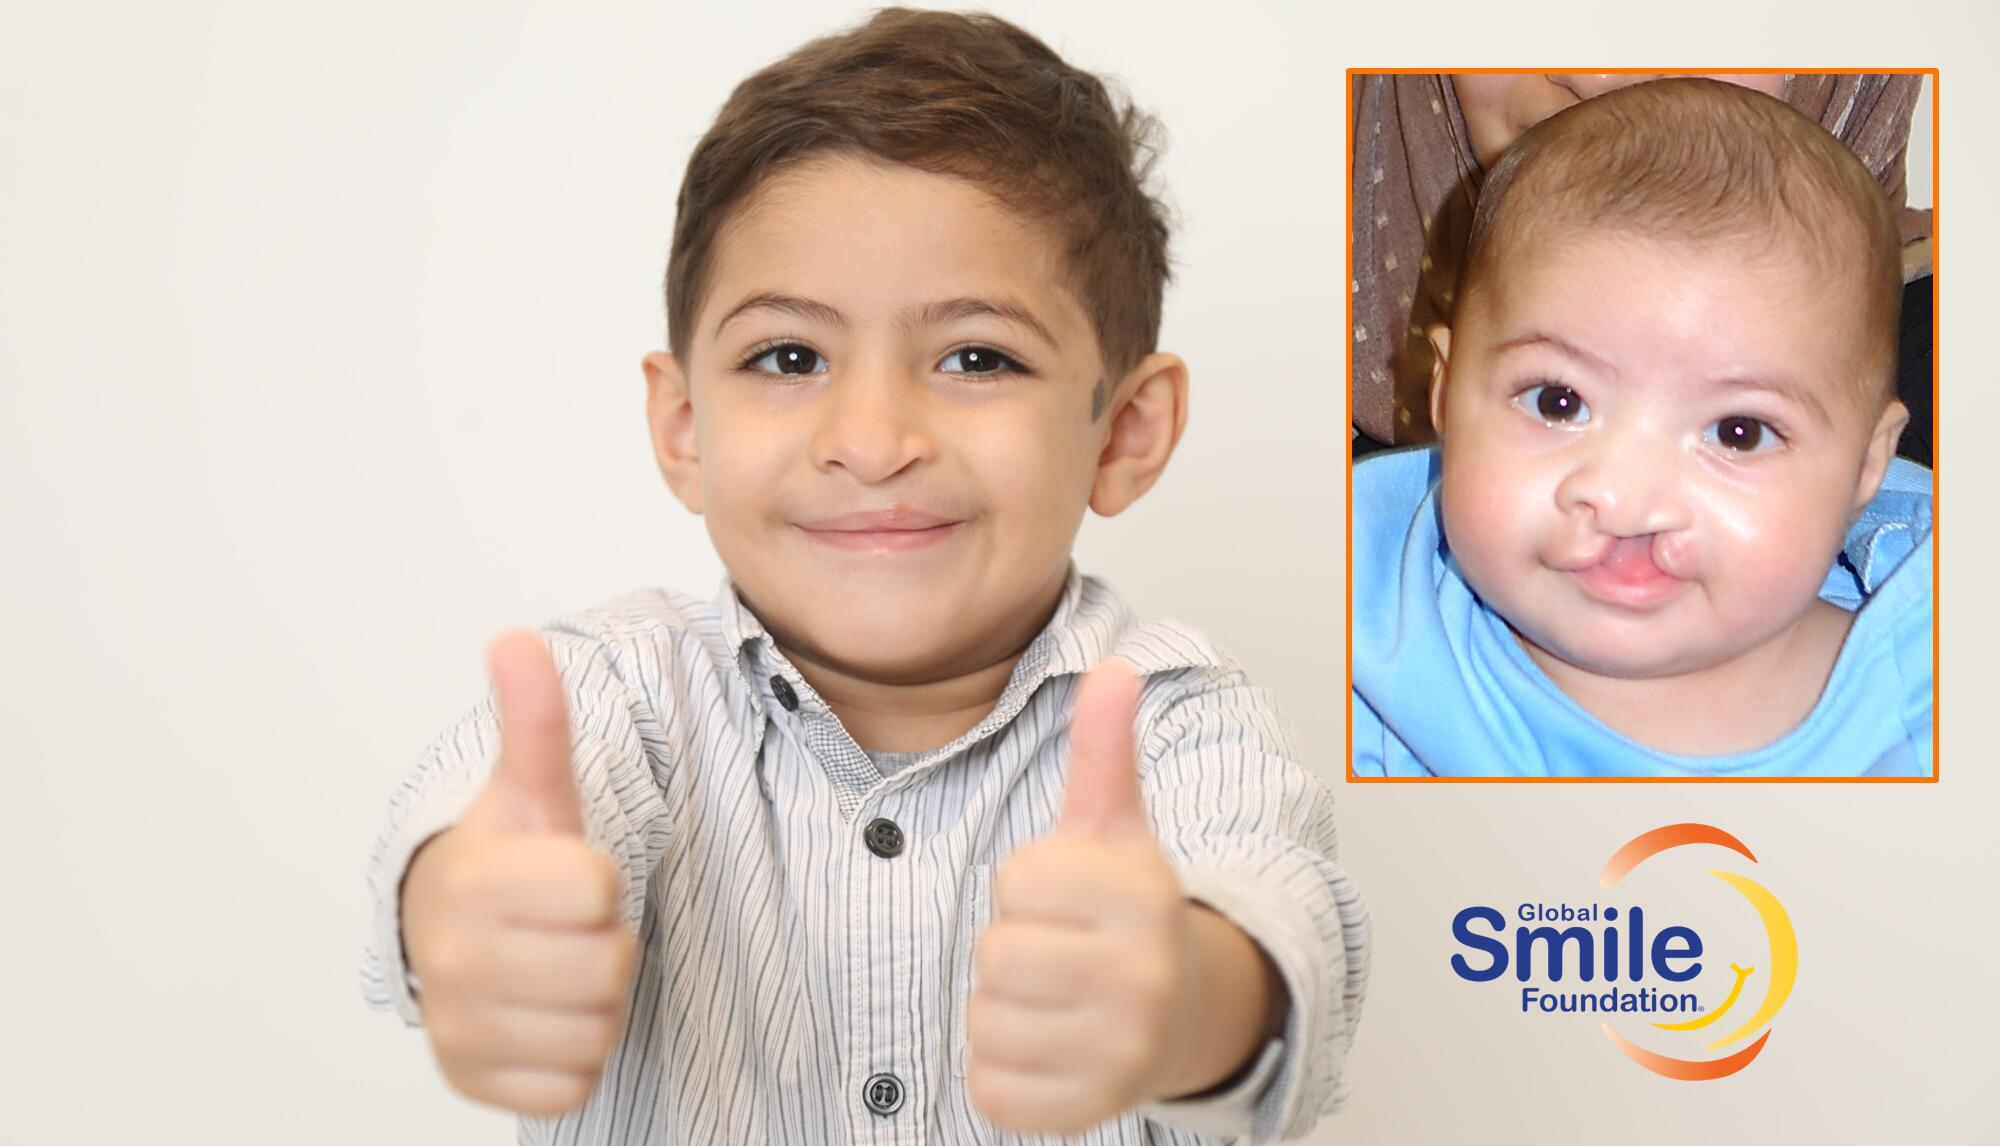 Fund for Children With Cleft in Lebanon/MENA